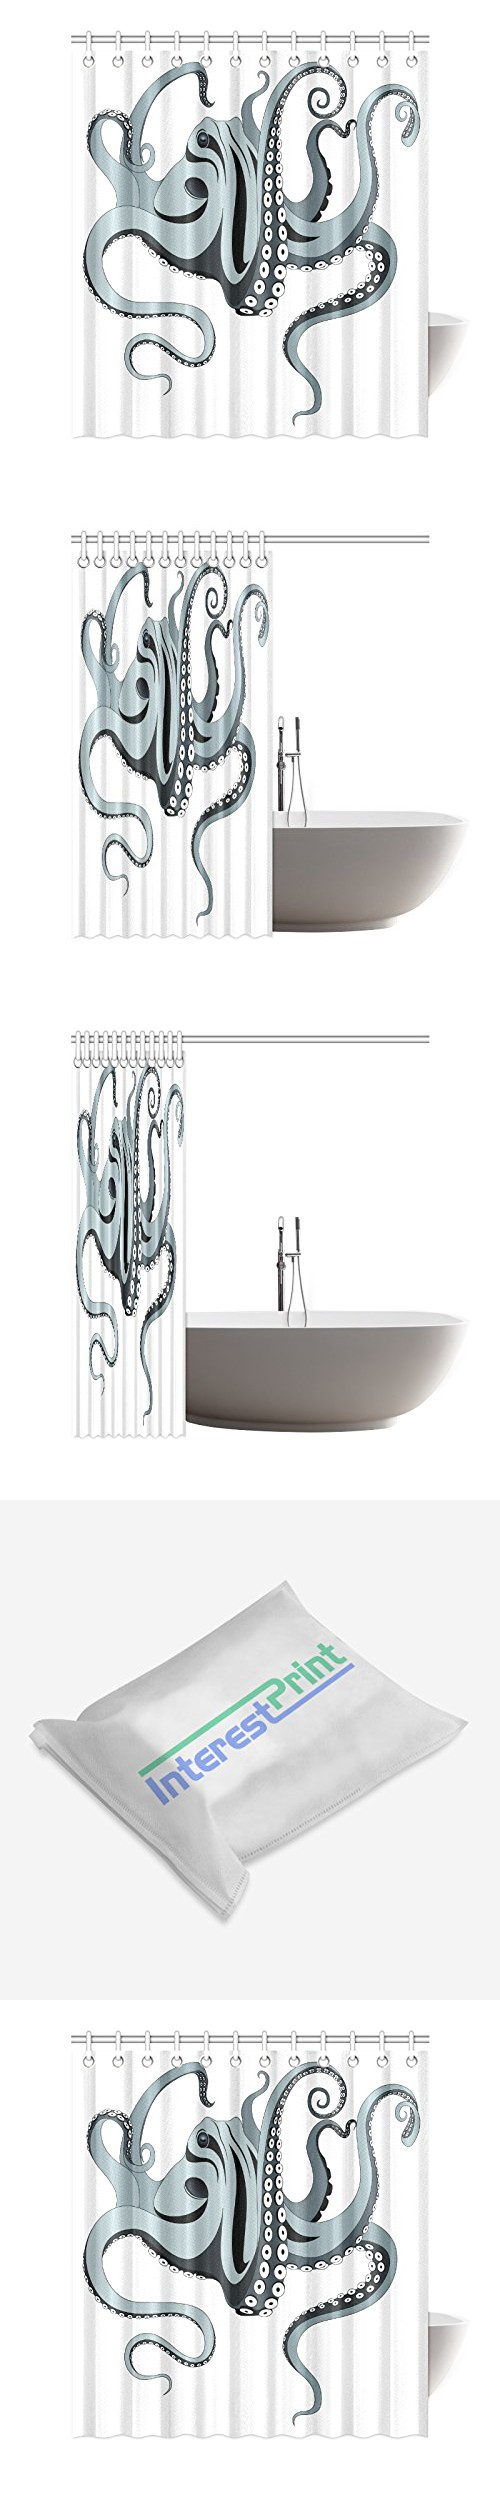 InterestPrint Home Bathroom Decor Funny Art Hipster Octopus Shower Curtain Hooks 66x72 Inch Black White And Grey Fabric Sea Ocean Spreading Tentacles